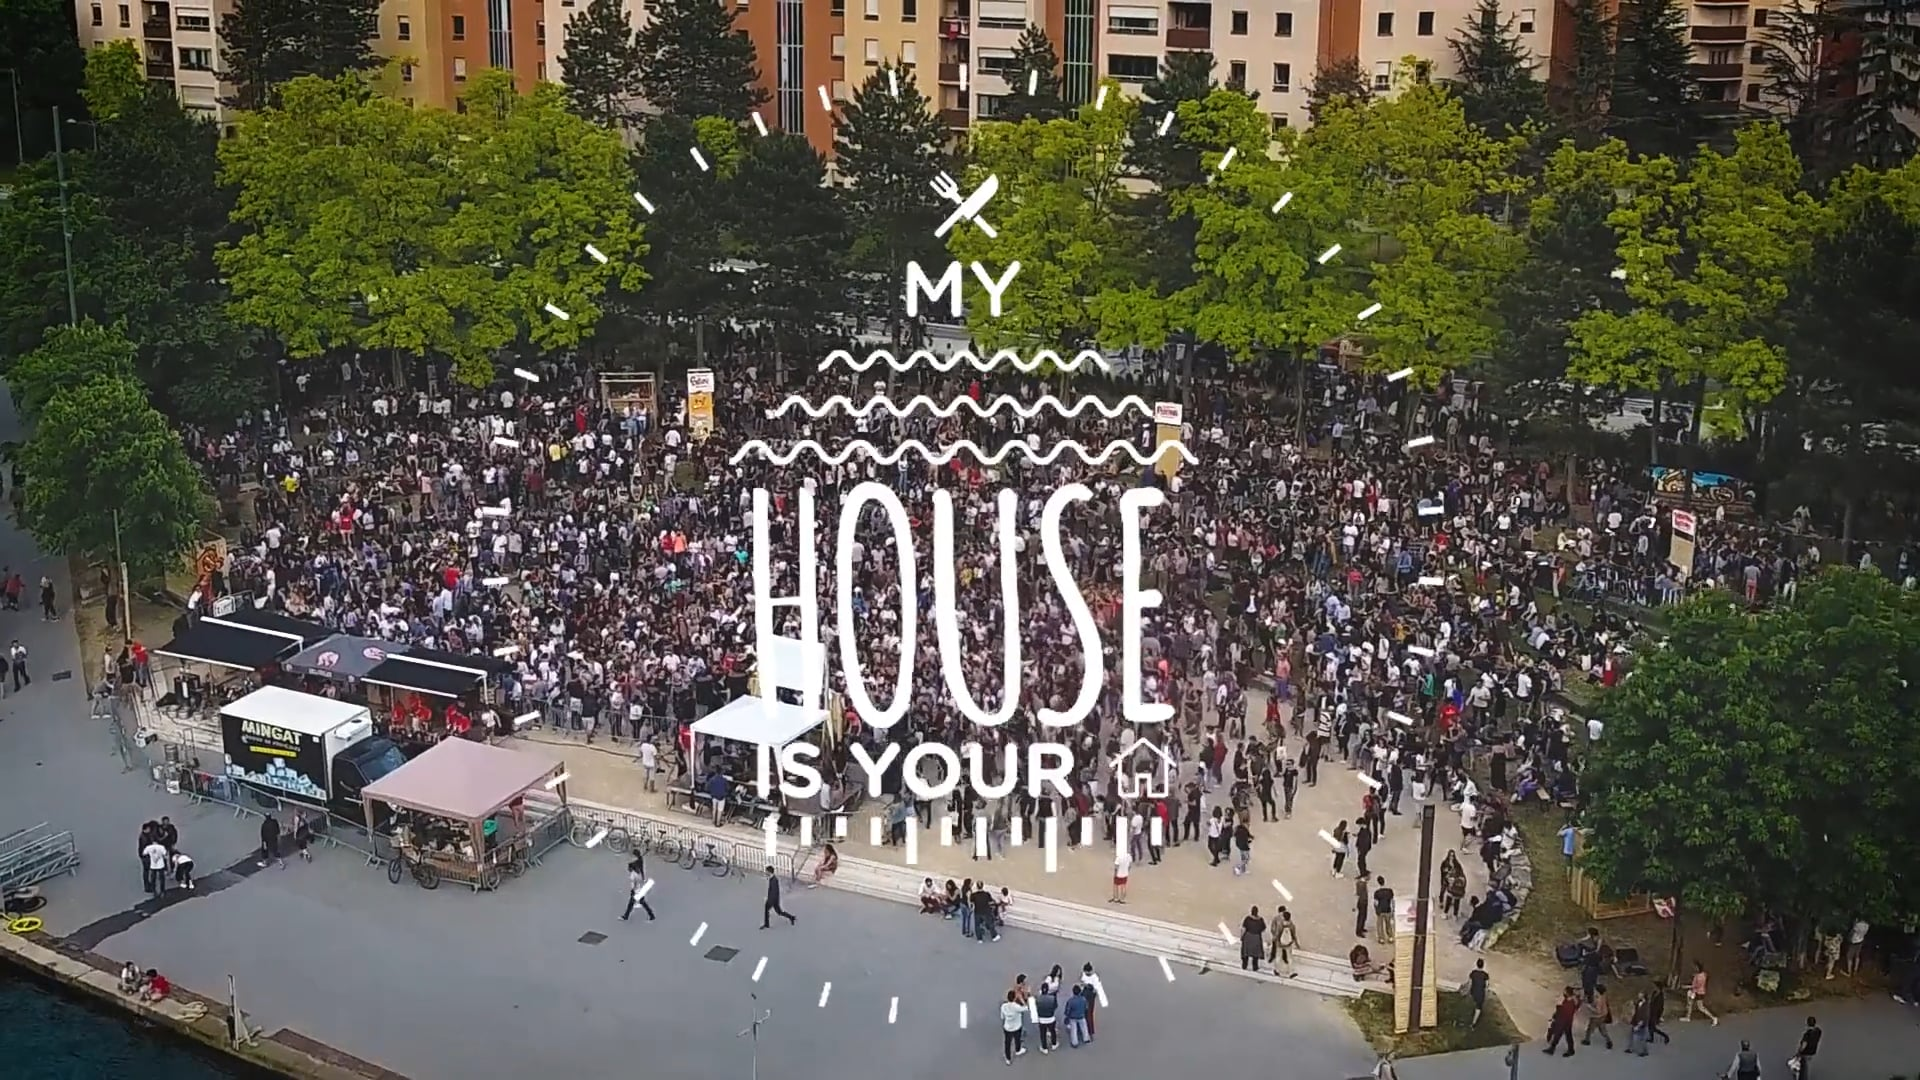 Extra! #2 - My House Is Your House - Nuits Sonores 2018